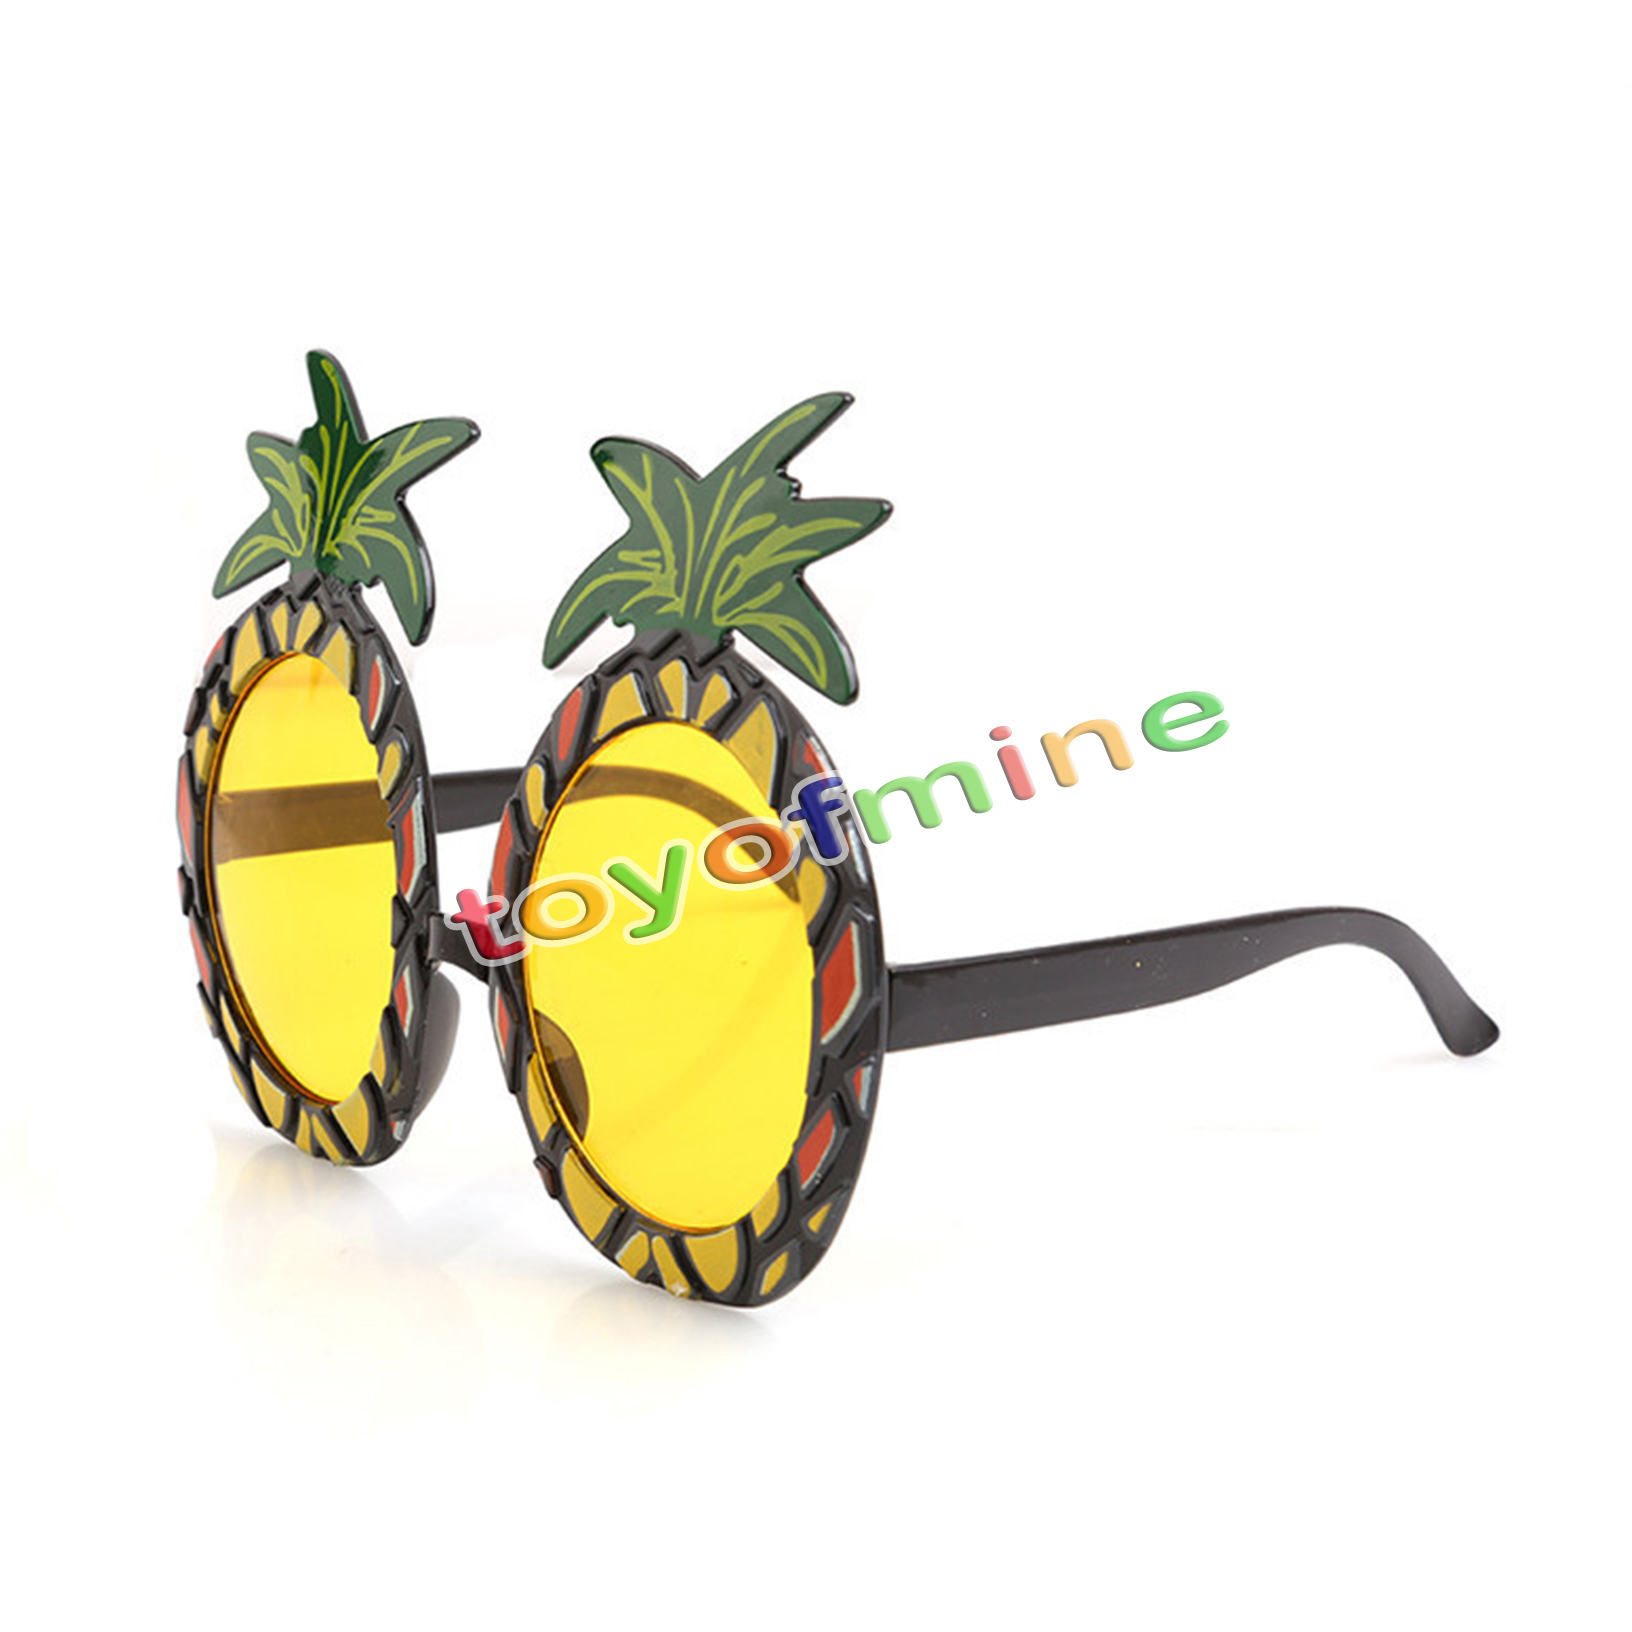 Pineapple Sunglasses  online whole pineapple sunglasses from china pineapple